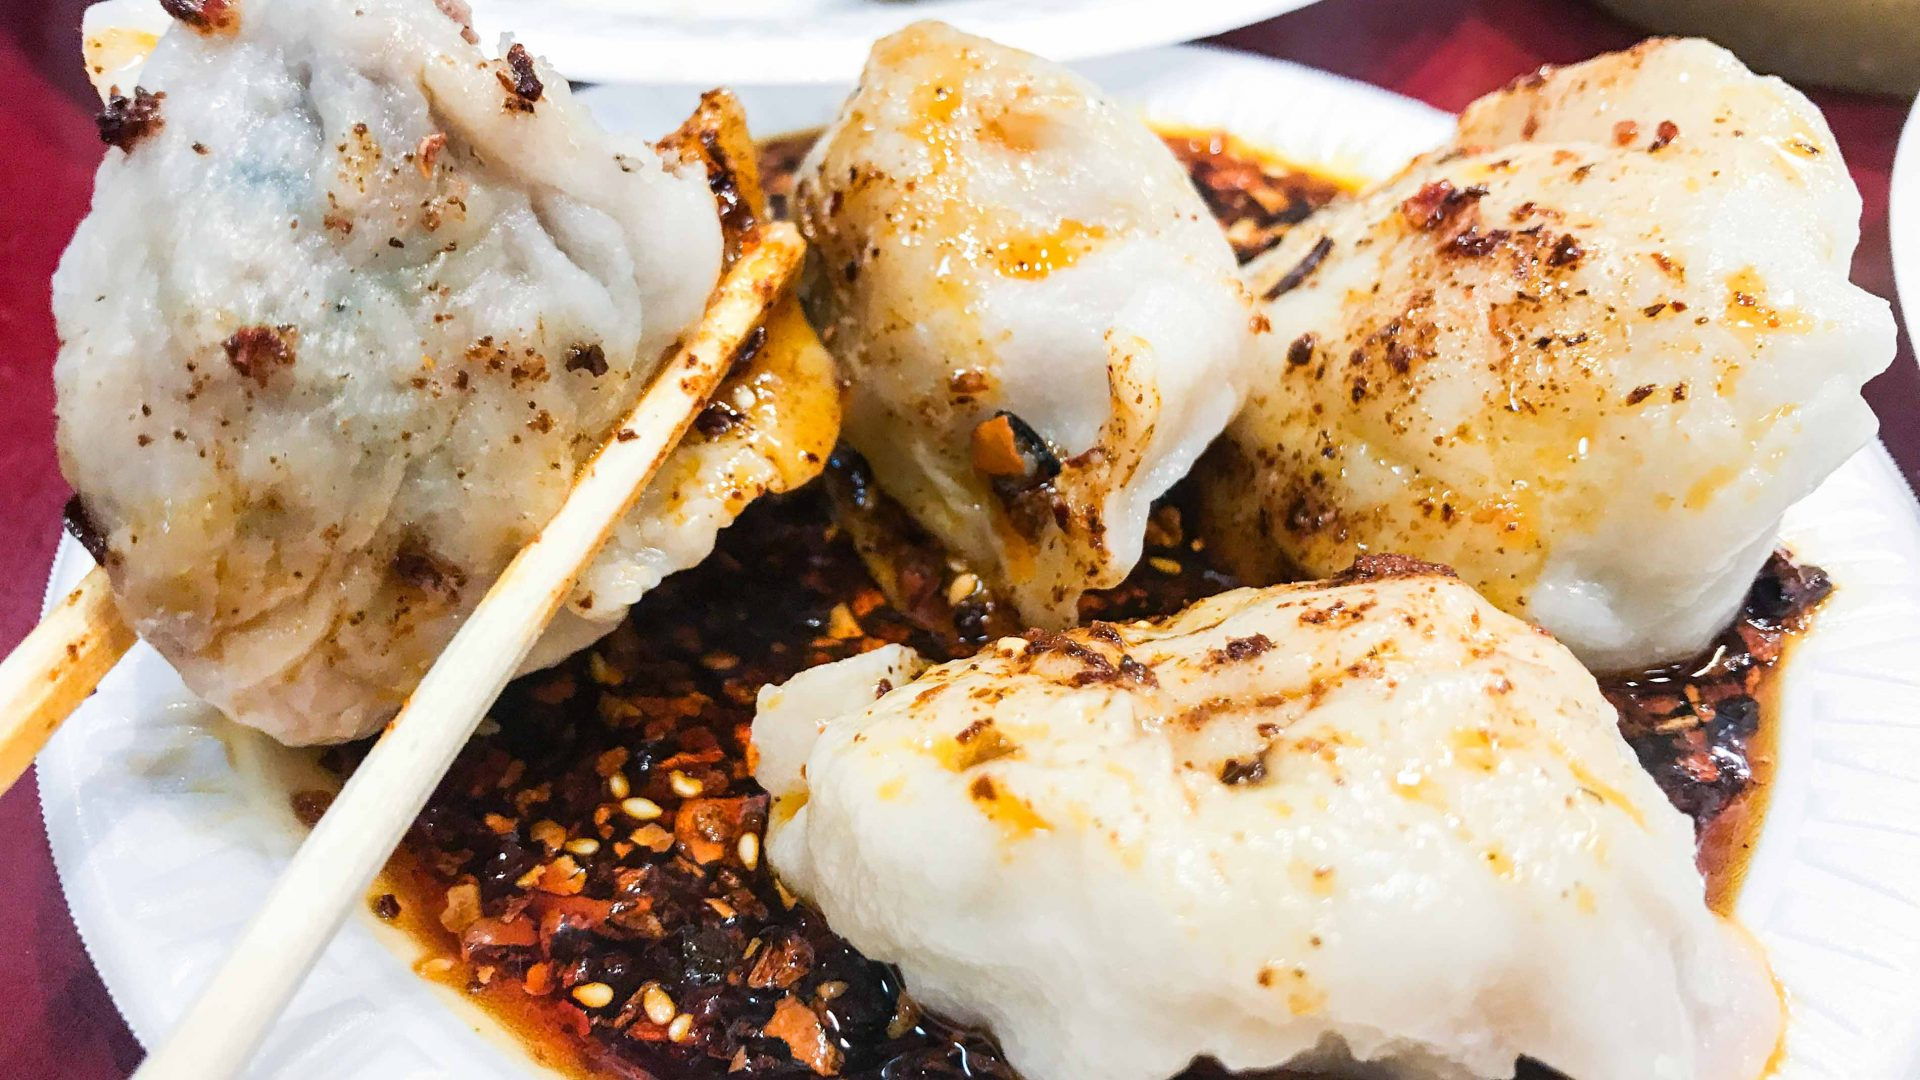 Lamb and fish dumplings at an eatery in Flushing, Queens.